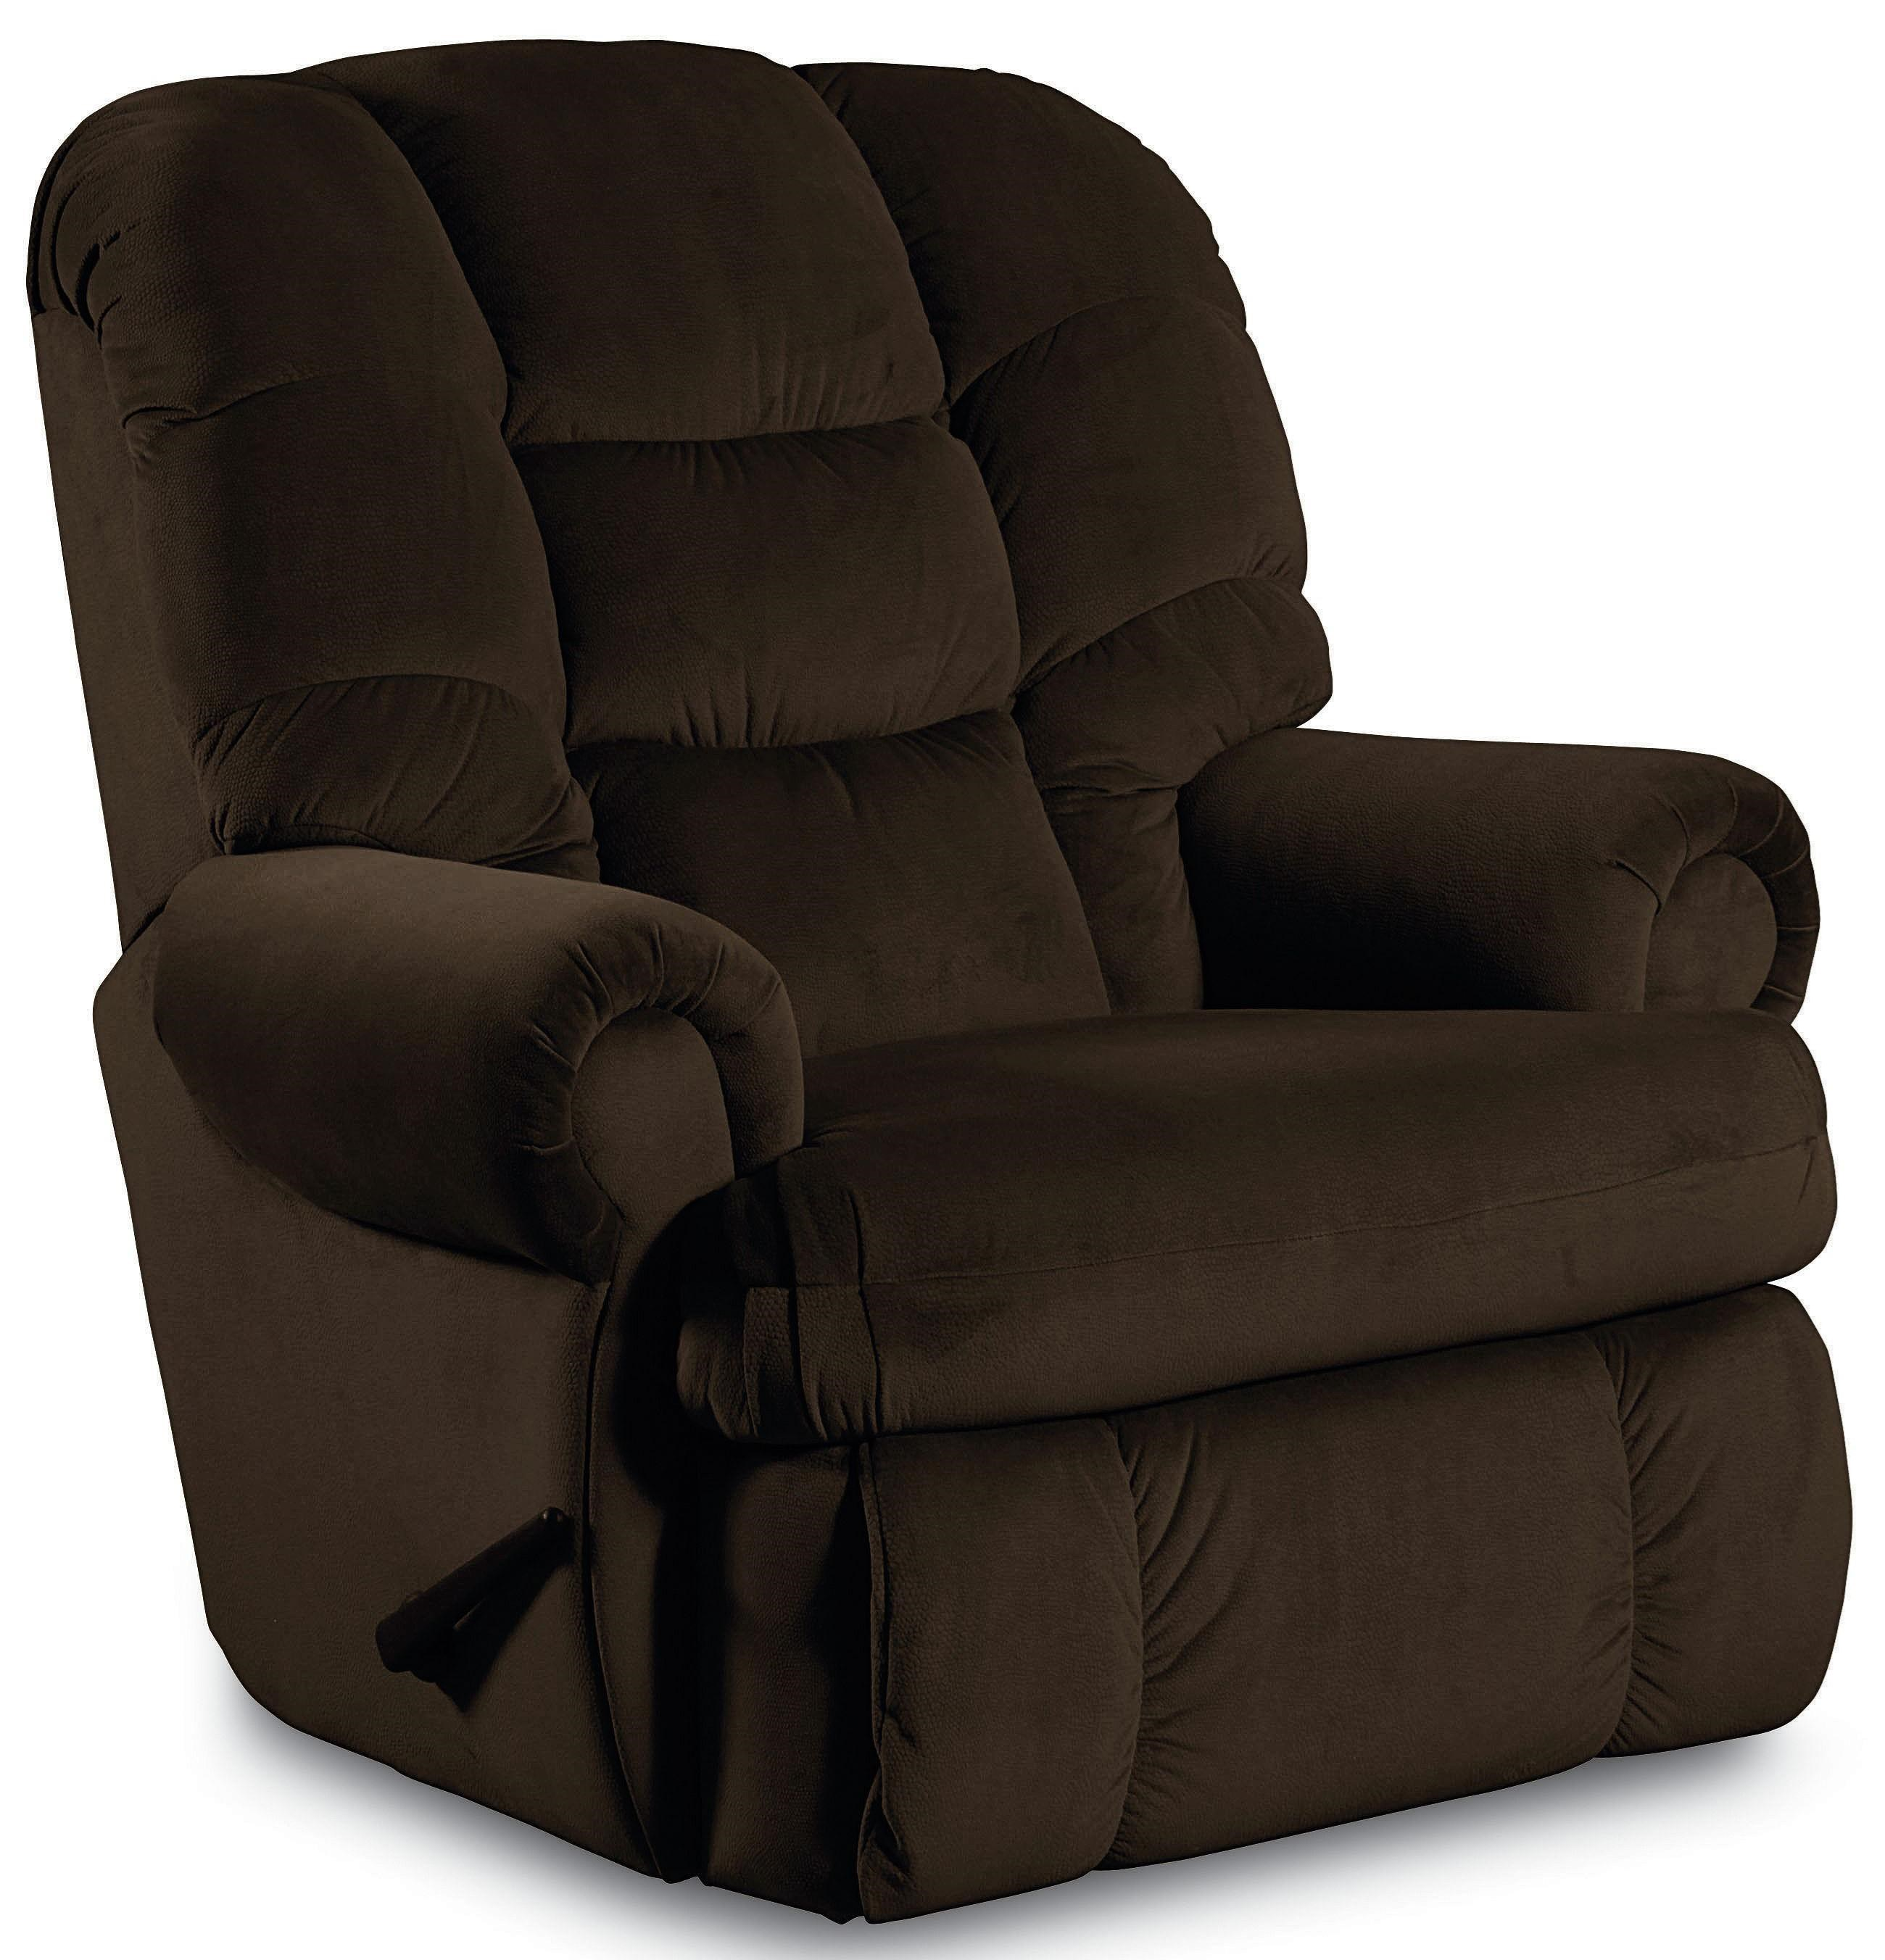 Wallsaver Recliner FREE with Your Purchase